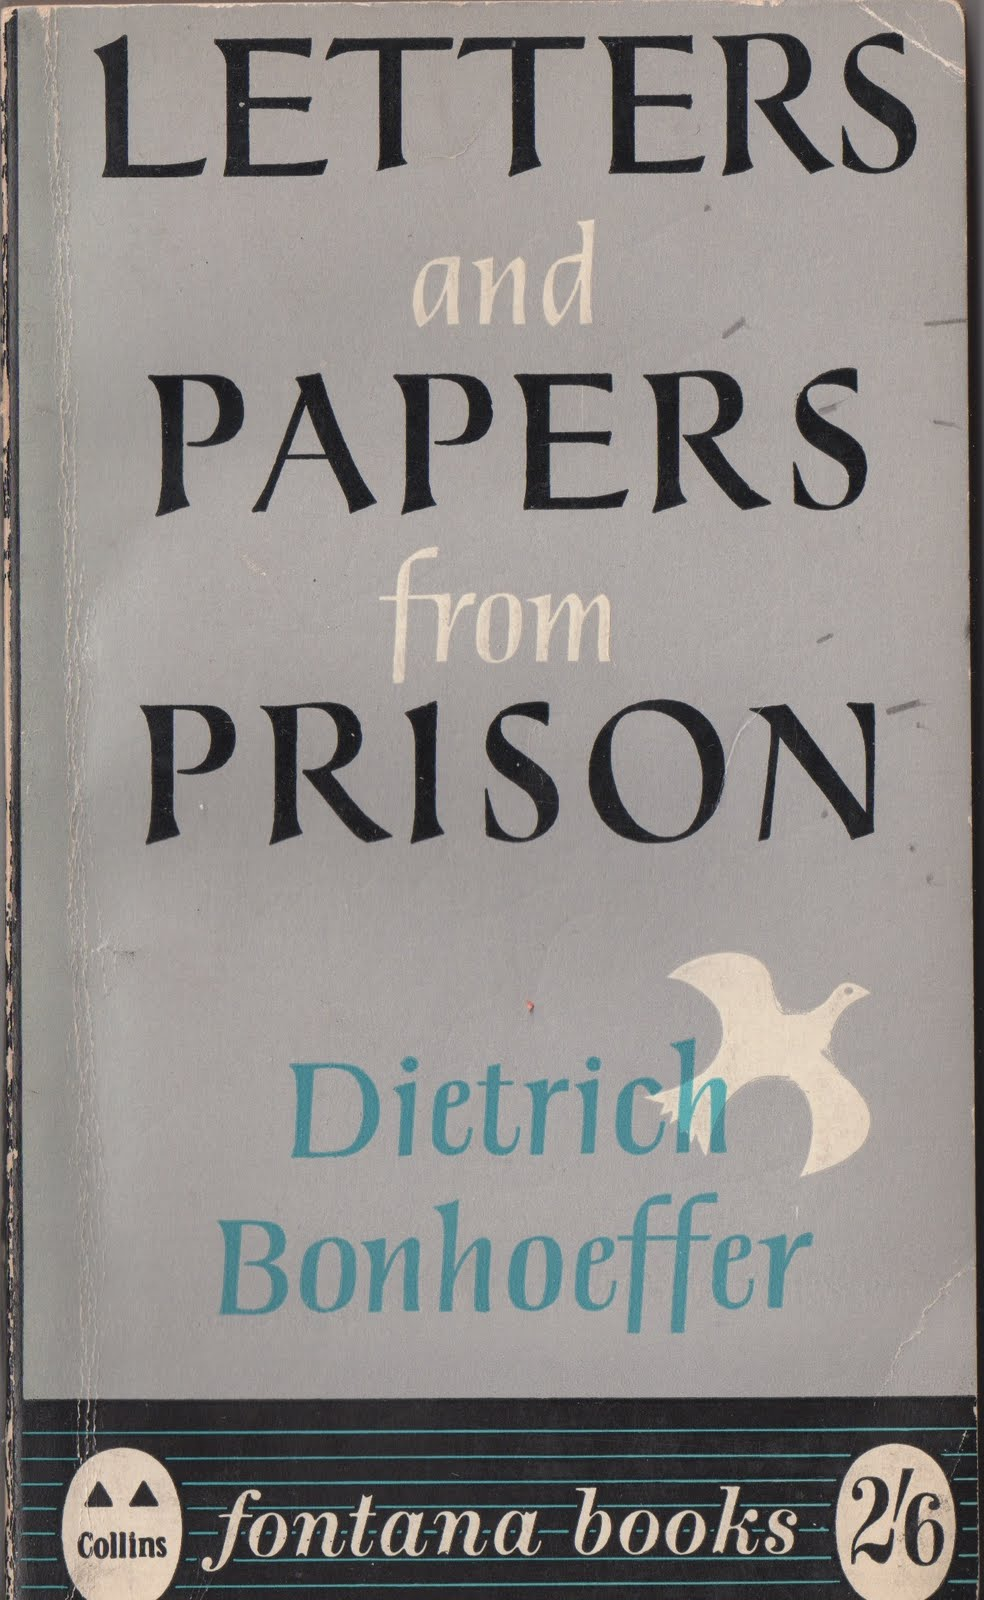 Stuck on Record: Book Covers: Letters and Papers from Prison